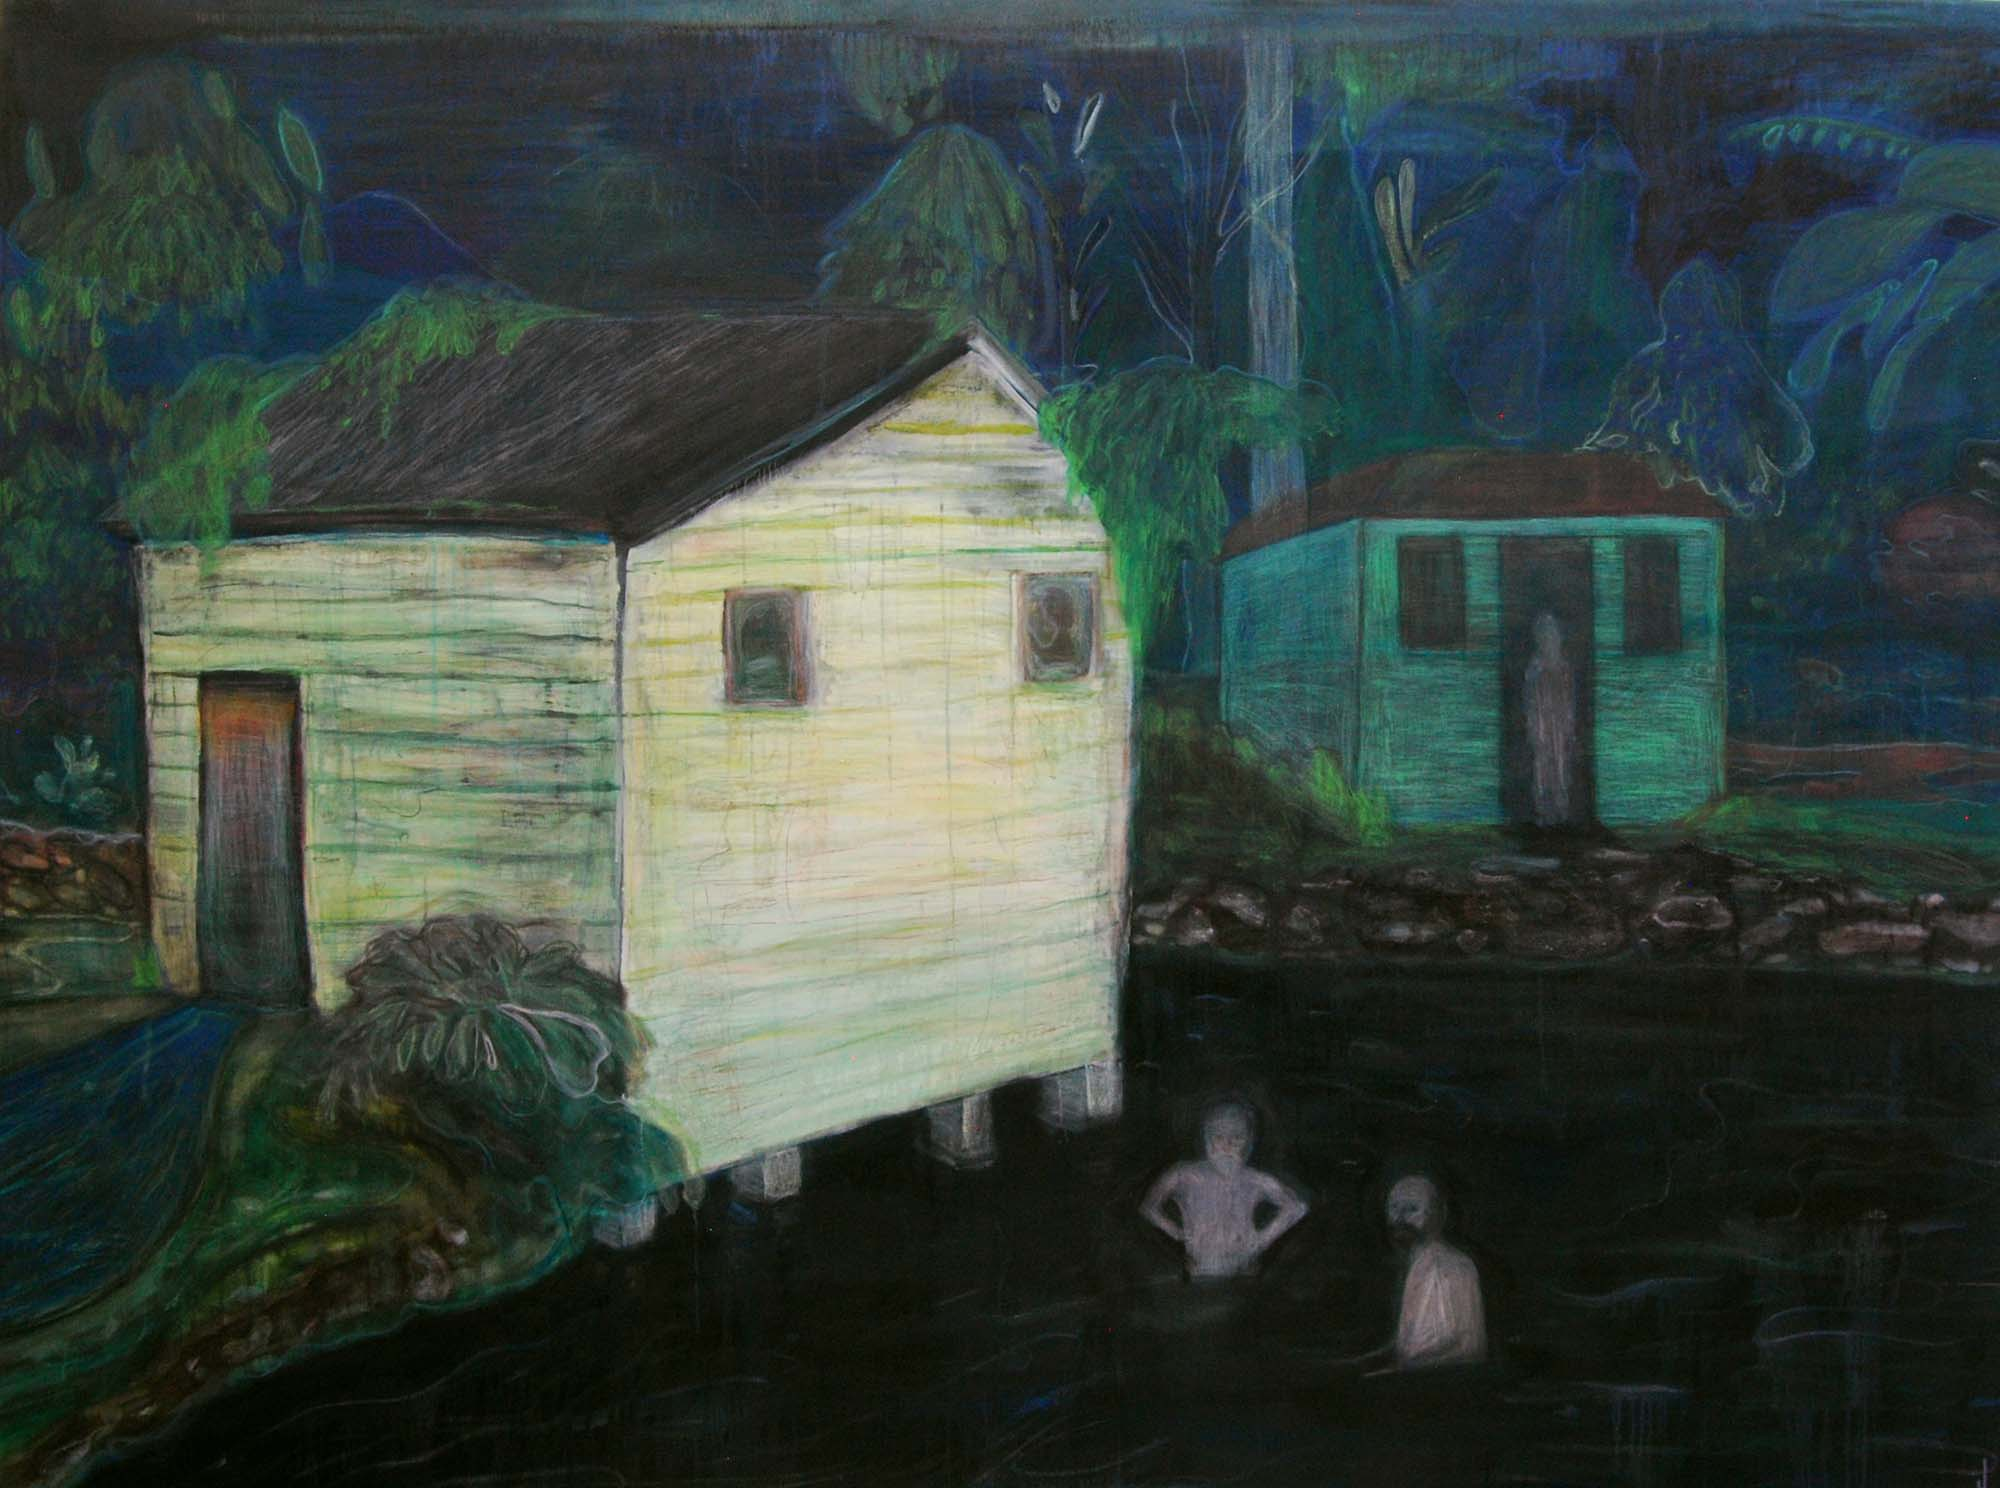 Justin Williams, Memorial Gardens with green house , 2014, oil and raw pigment on canvas, 175 x 221cm